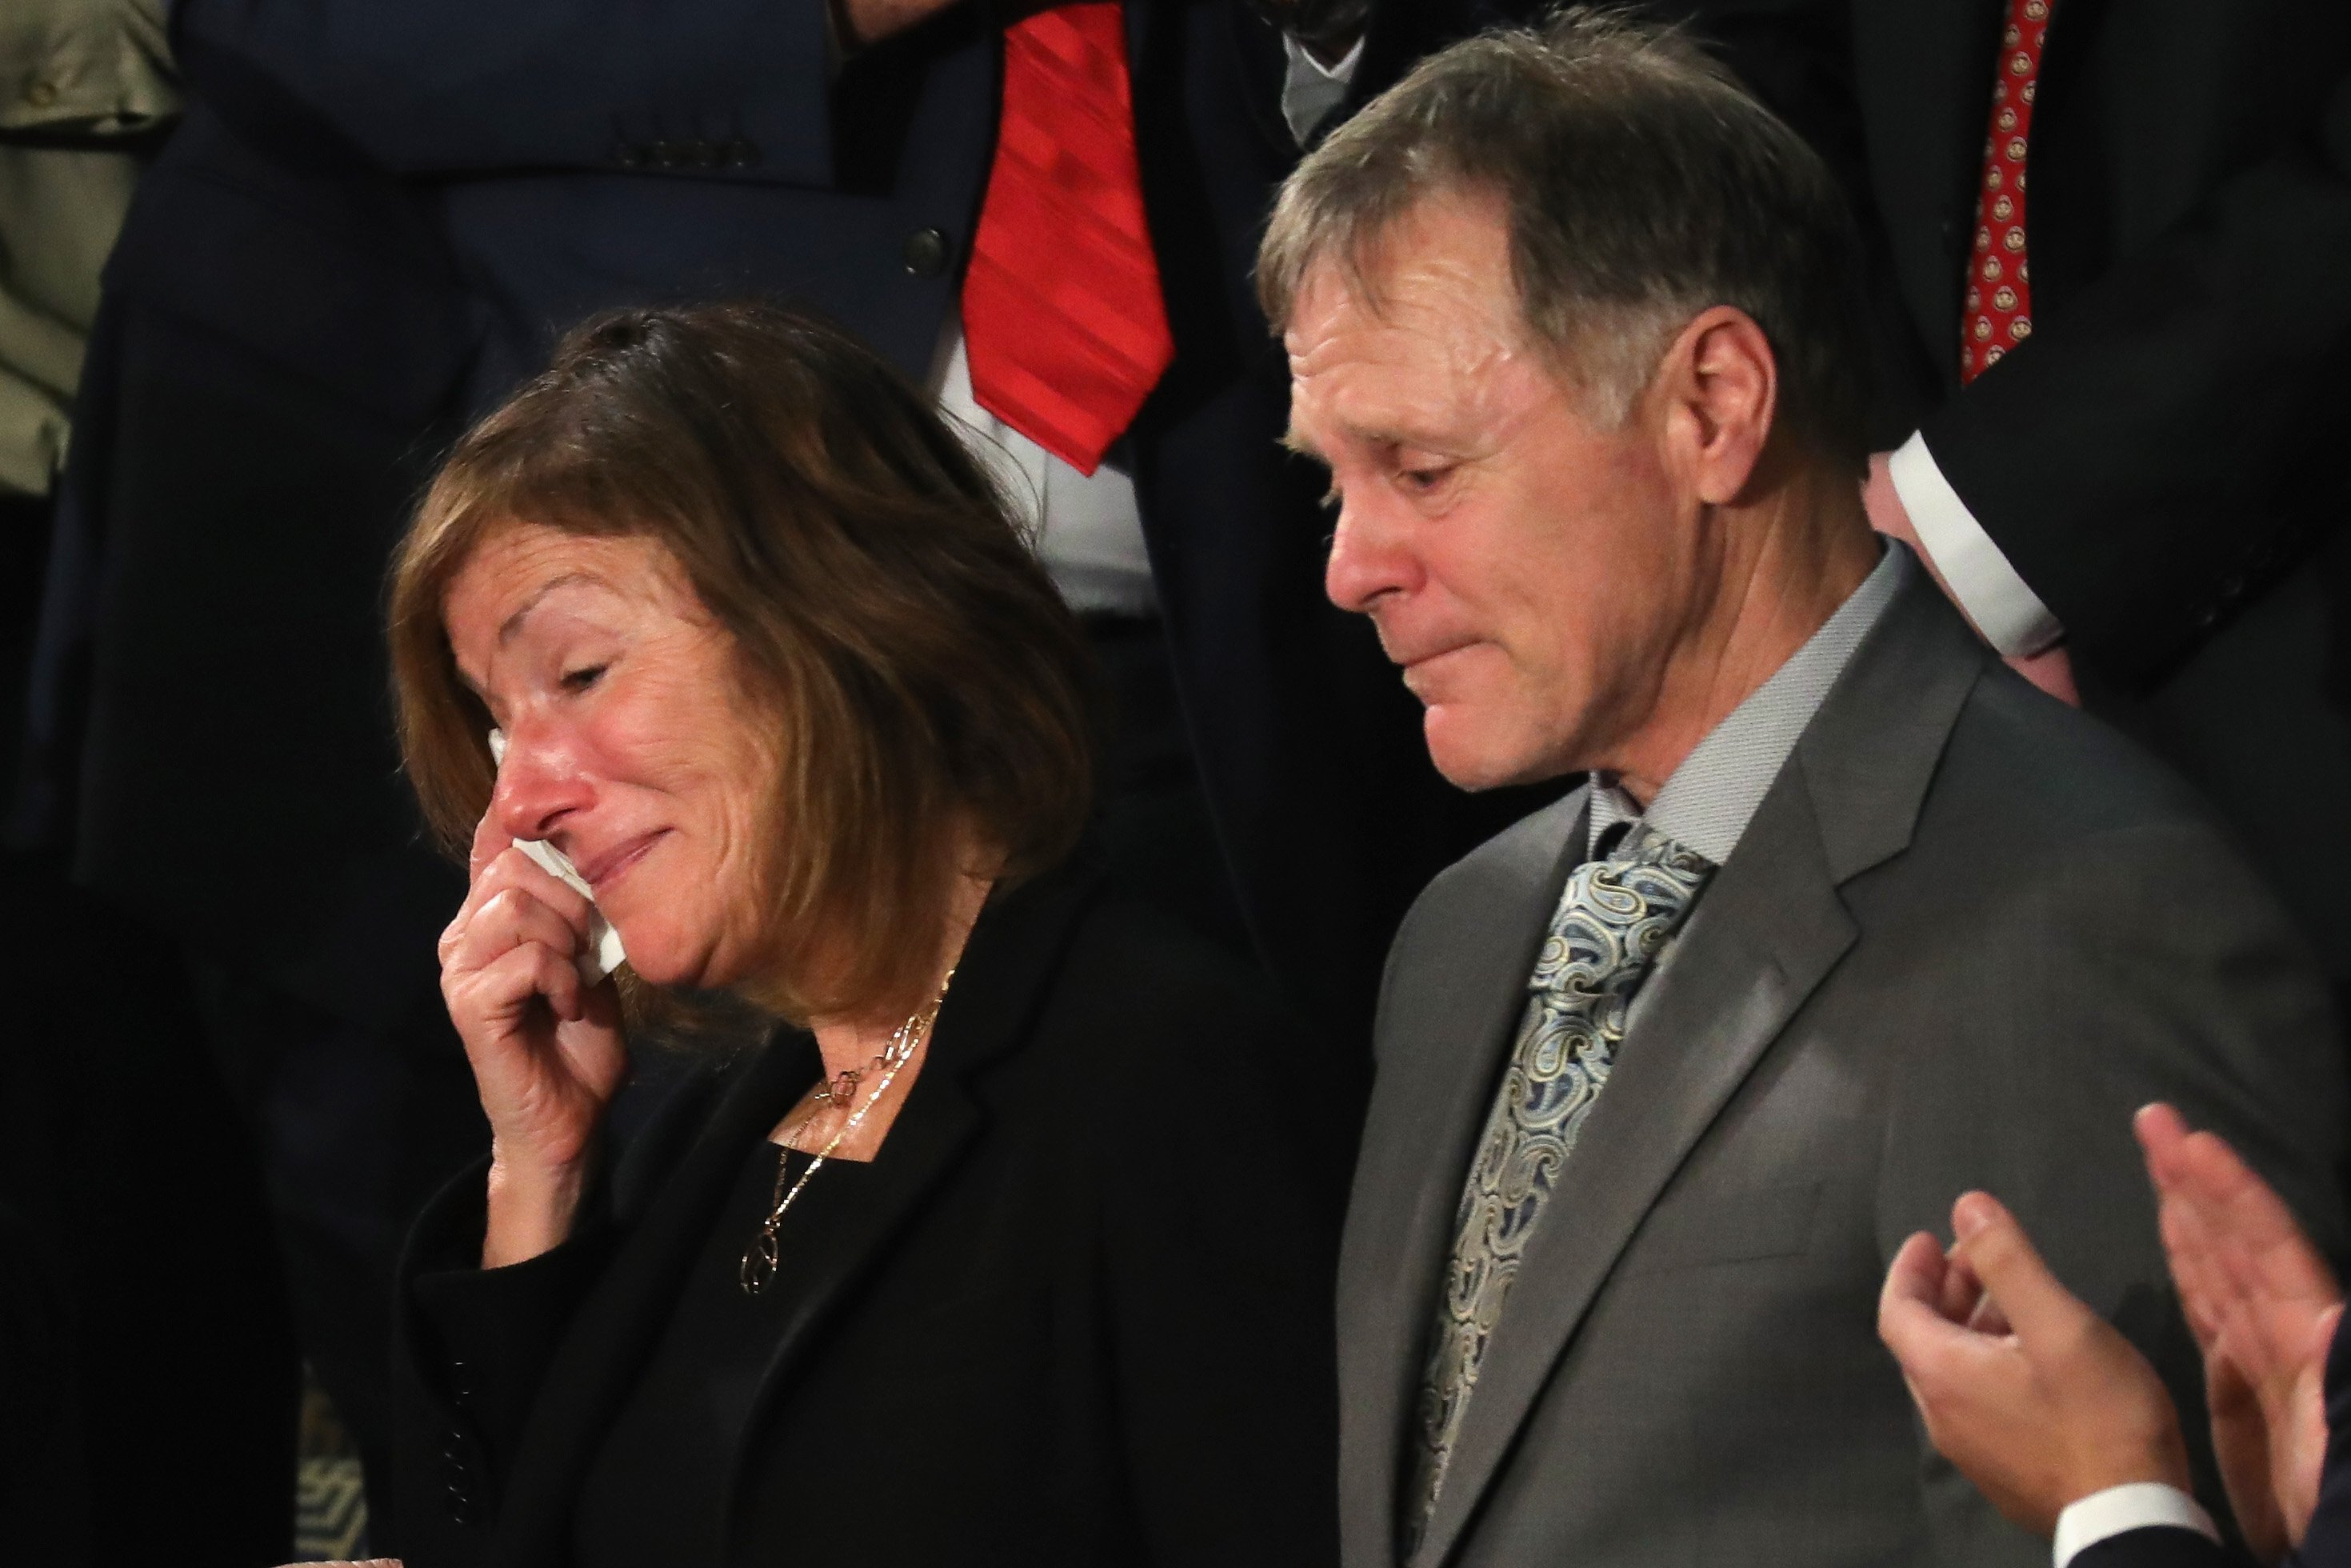 Fred and Cindy Warmbier, 22-year-old Otto Warmbier's bereaved parents. Source: Getty Images/Global Images Ukraine